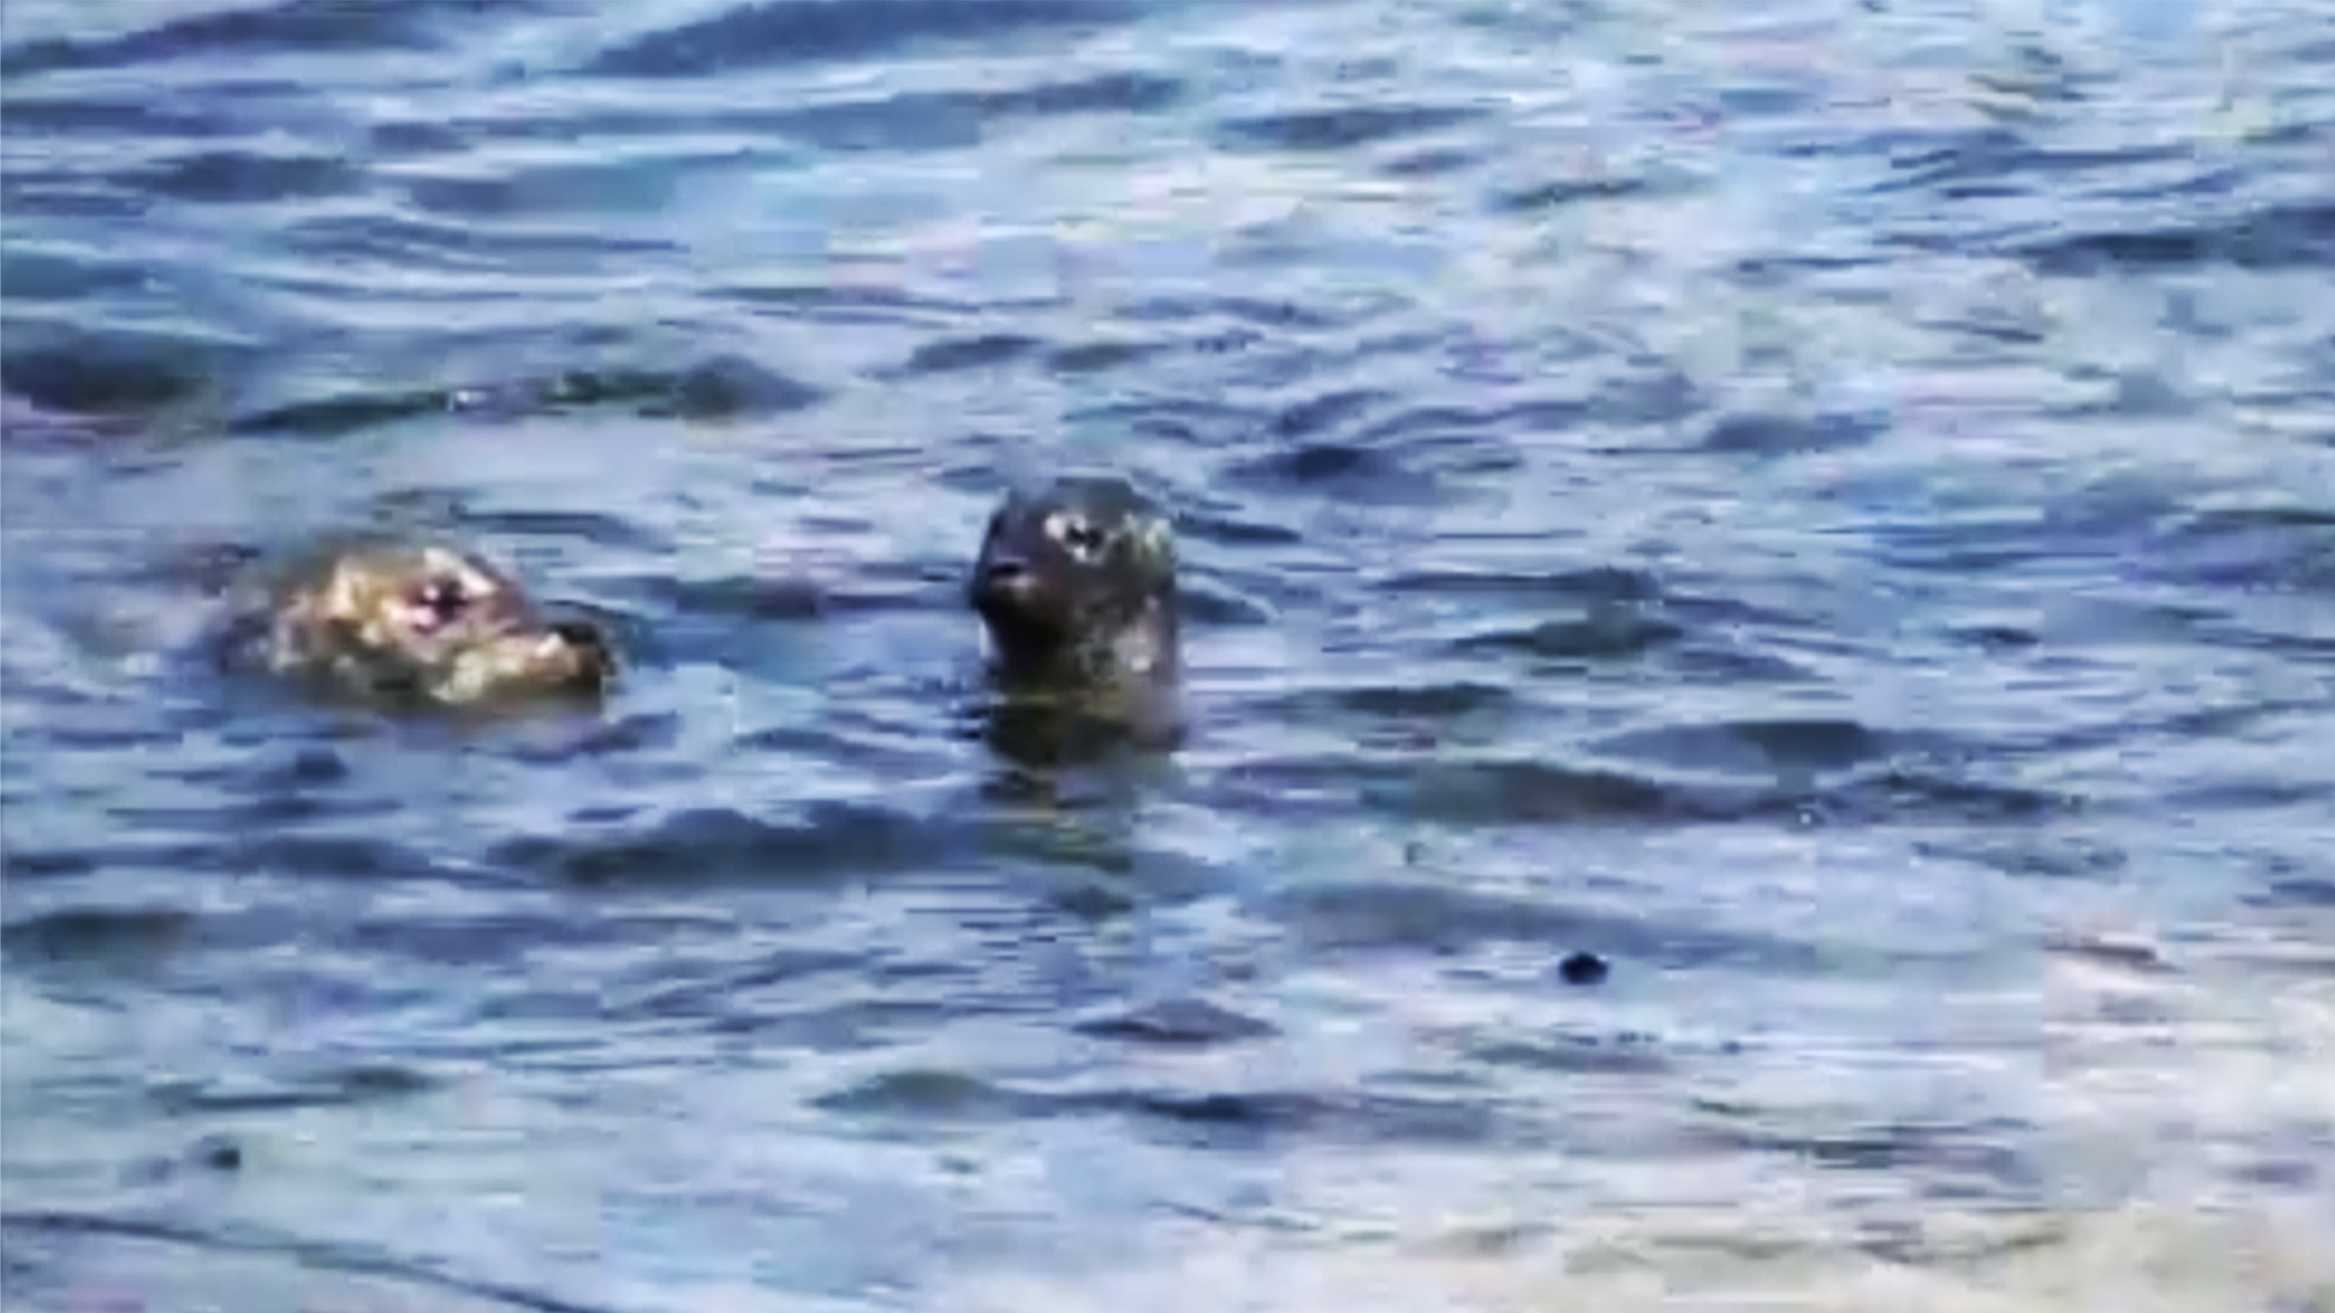 A harbor seal pup born in Pacific Grove on March 17, 2015 gets a swimming lesson from its mother.